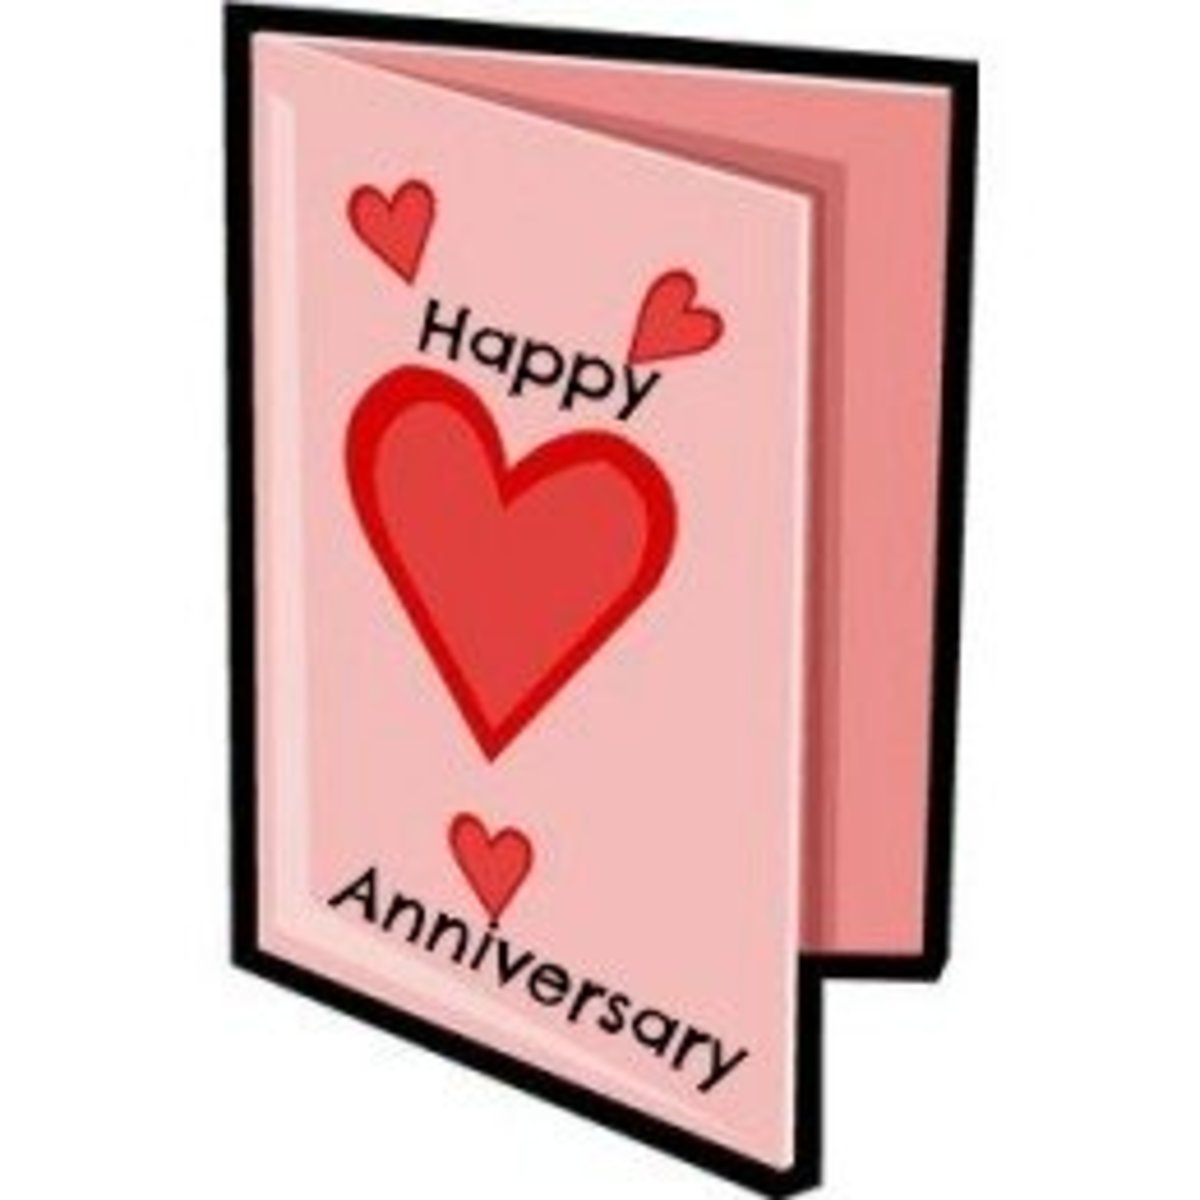 Happy Anniversary Card